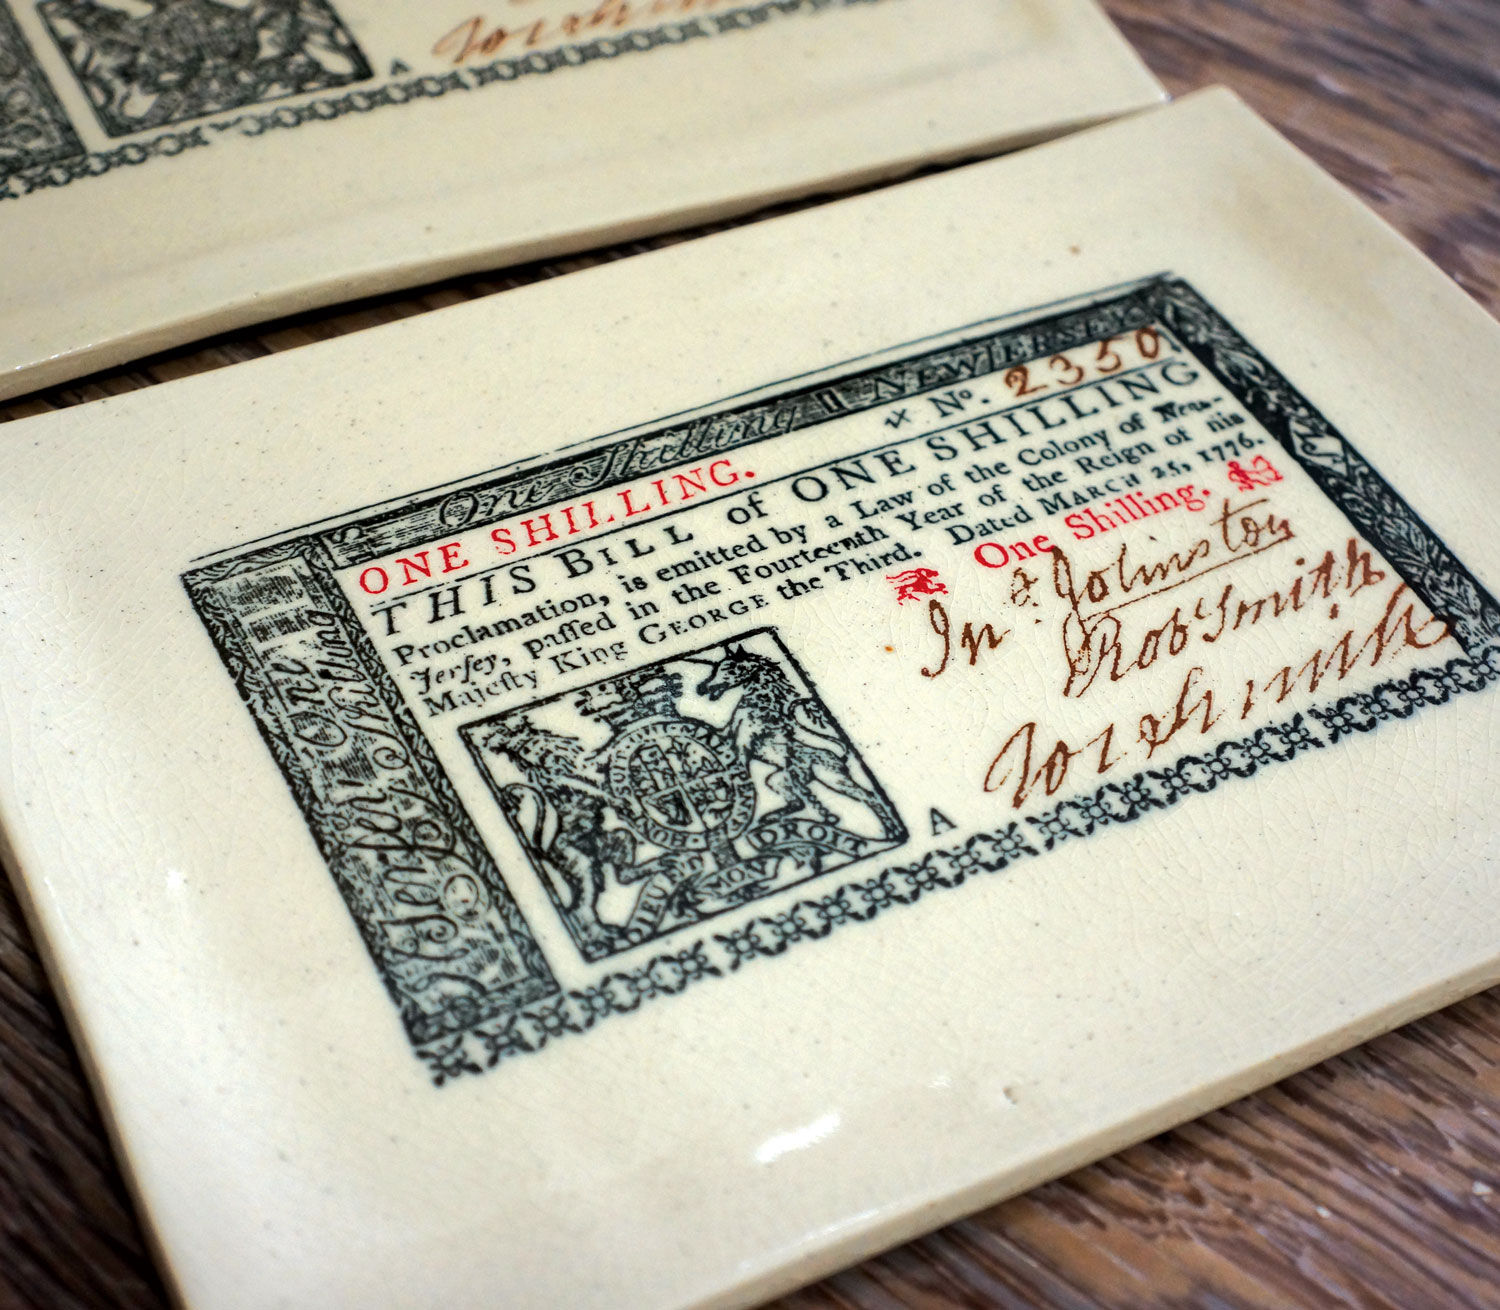 """NEW JERSEY COLONIAL CURRENCY   In 1664, 350 years ago this year, the Dutch surrendered New Netherland to the British and the colony of New Jersey was born . This imprint was created from original 1776 New Jersey colonial currency, one- and three-shilling notes (property of the artist), printed in New Jersey, and in use in New Jersey on the eve of the American Revolution.  Look for the royal colonial seal, flanked by a lion and a unicorn, as well as Benjamin Franklin's famous """"Join or Die"""" woodcut, on ceramic tiles, plates, ornaments, and pendants."""